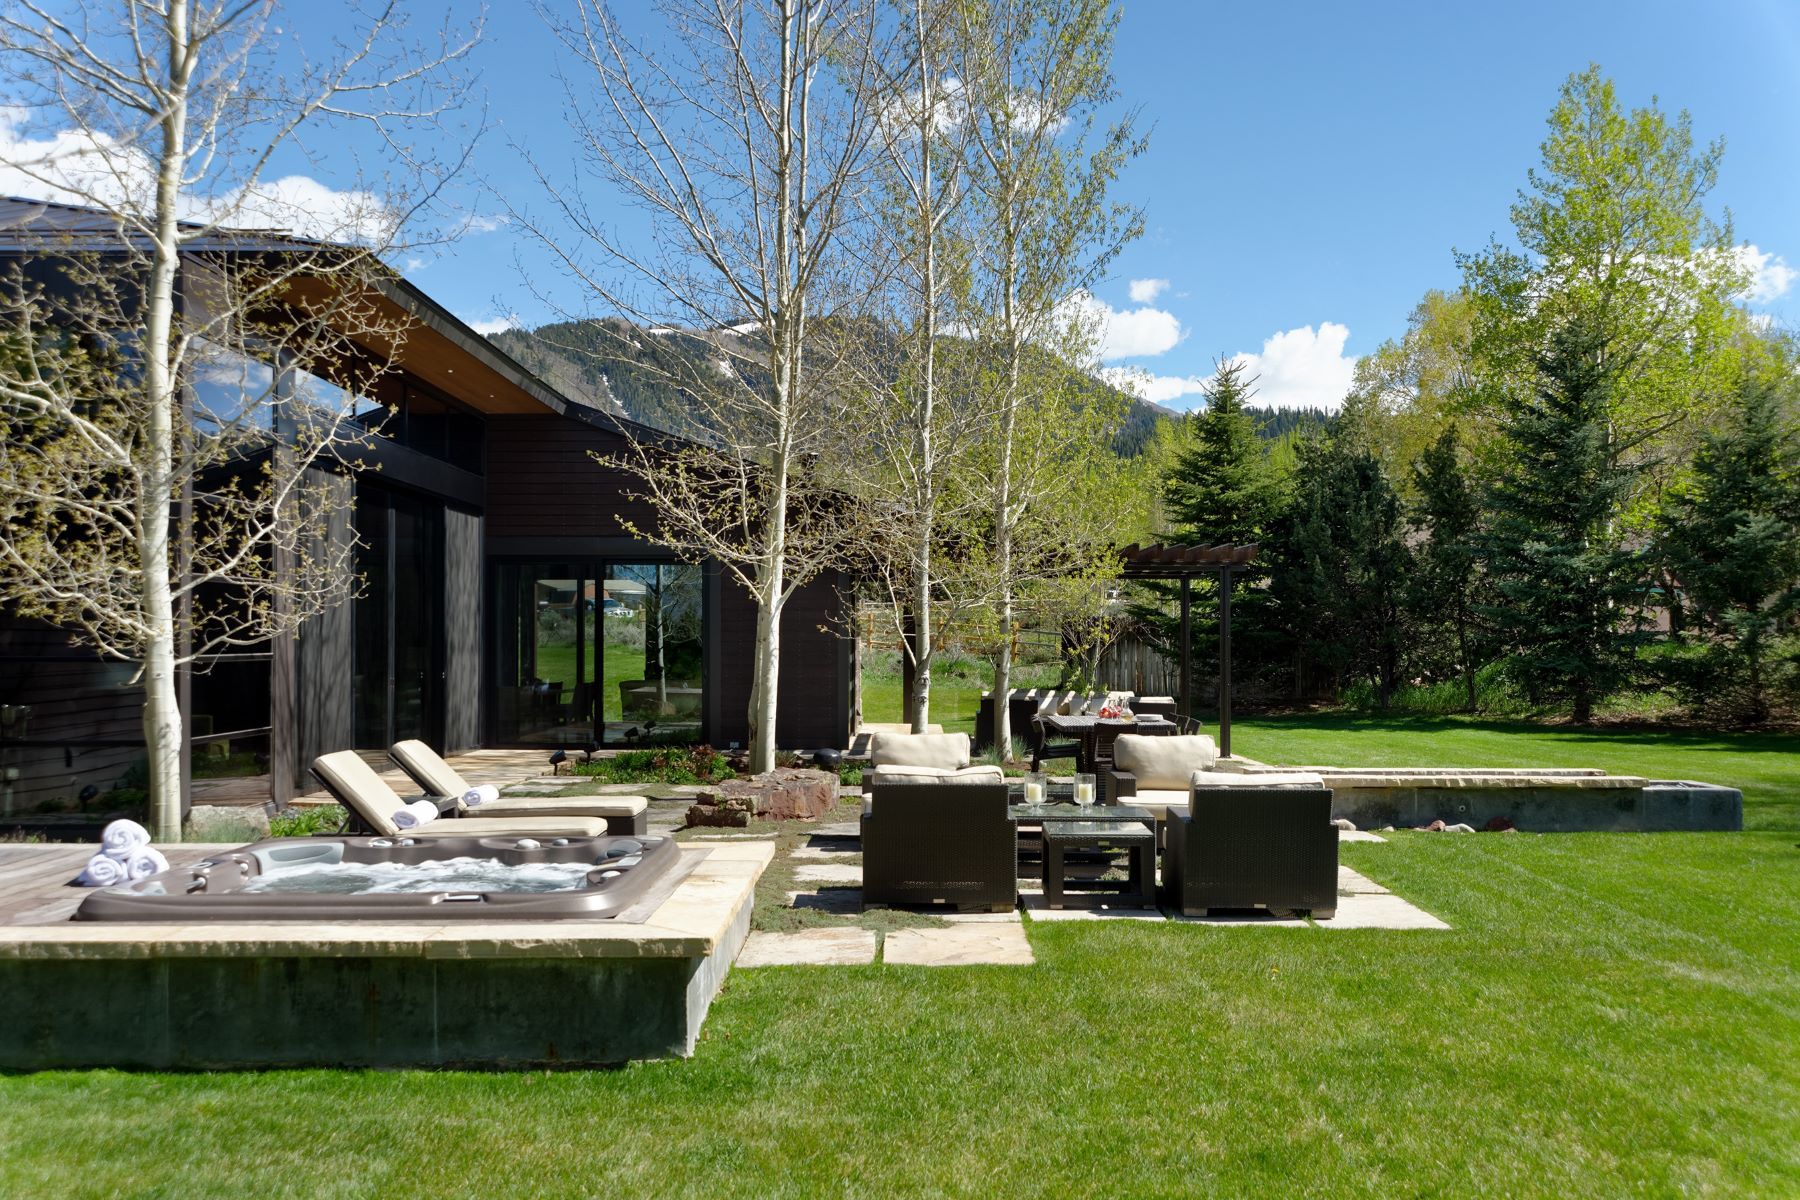 Maison unifamiliale pour l Vente à Impressive Mountain Contemporary in West Aspen 28 Maroon Drive West Aspen, Aspen, Colorado, 81611 États-Unis